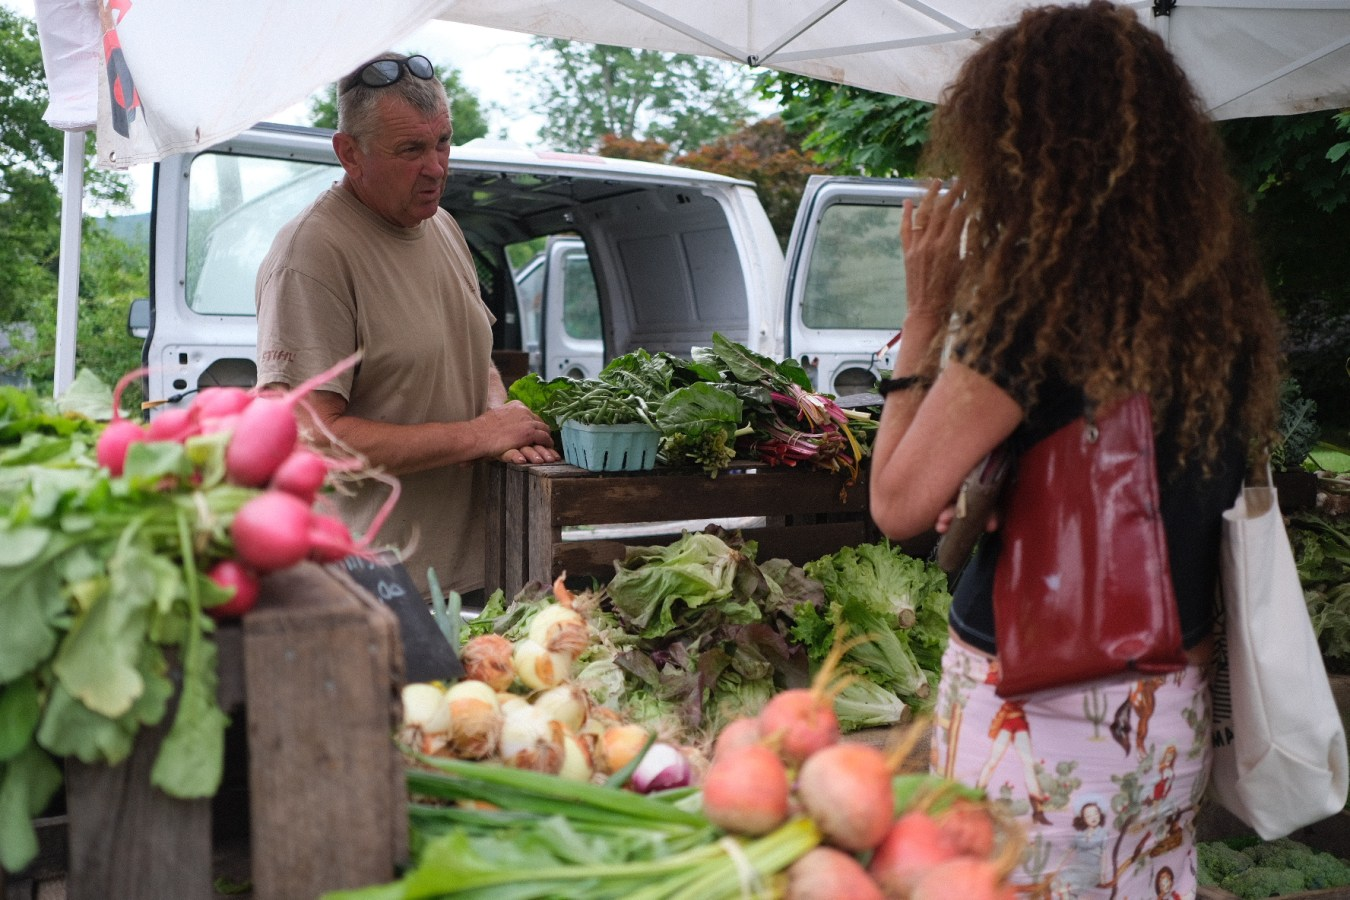 A woman buys fresh vegetables at the farmers market